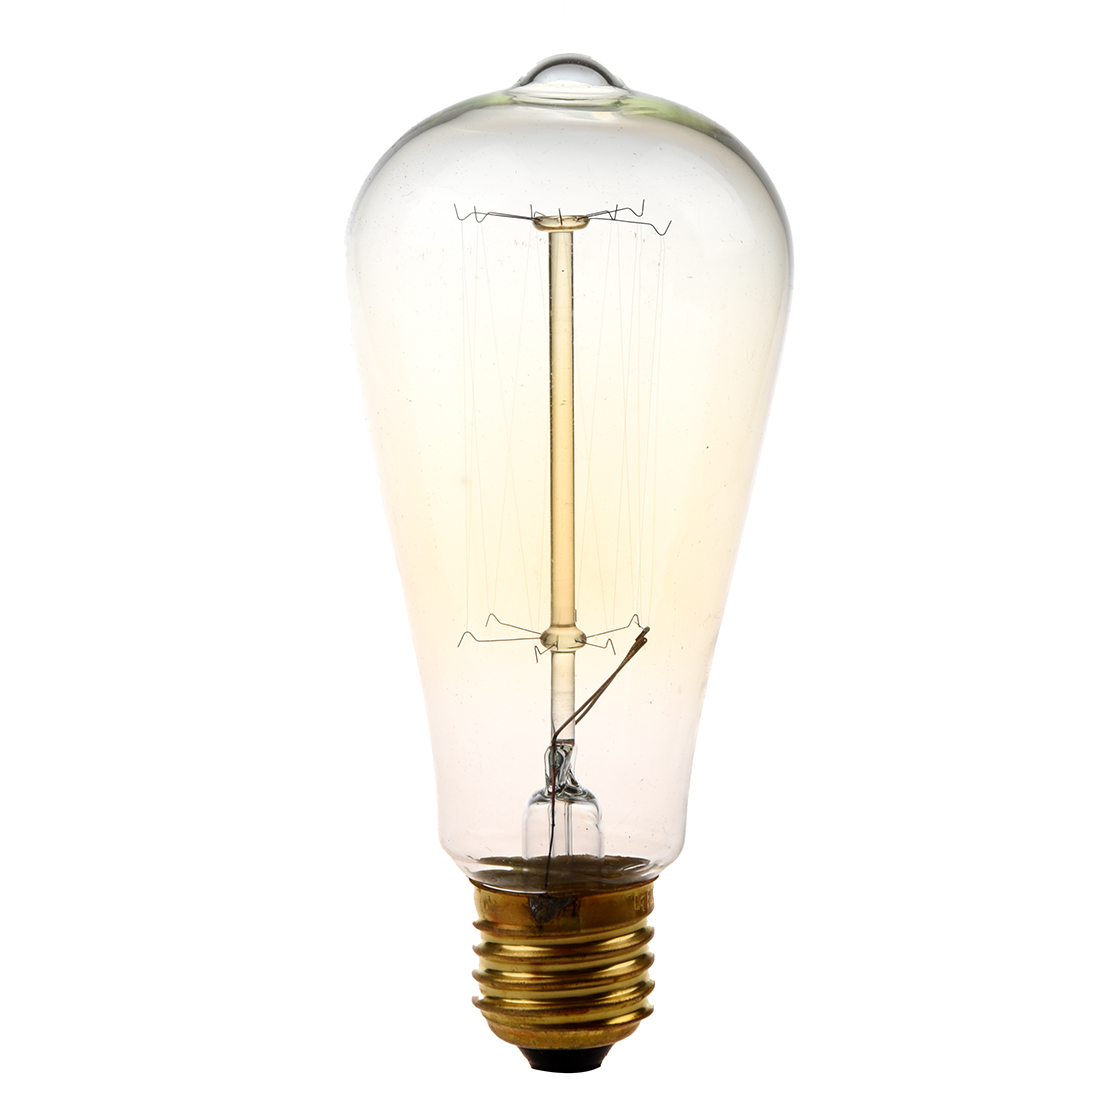 e27 st64 ampoule filament de tungstene lampe a incandescence 220v t7n7 ebay. Black Bedroom Furniture Sets. Home Design Ideas